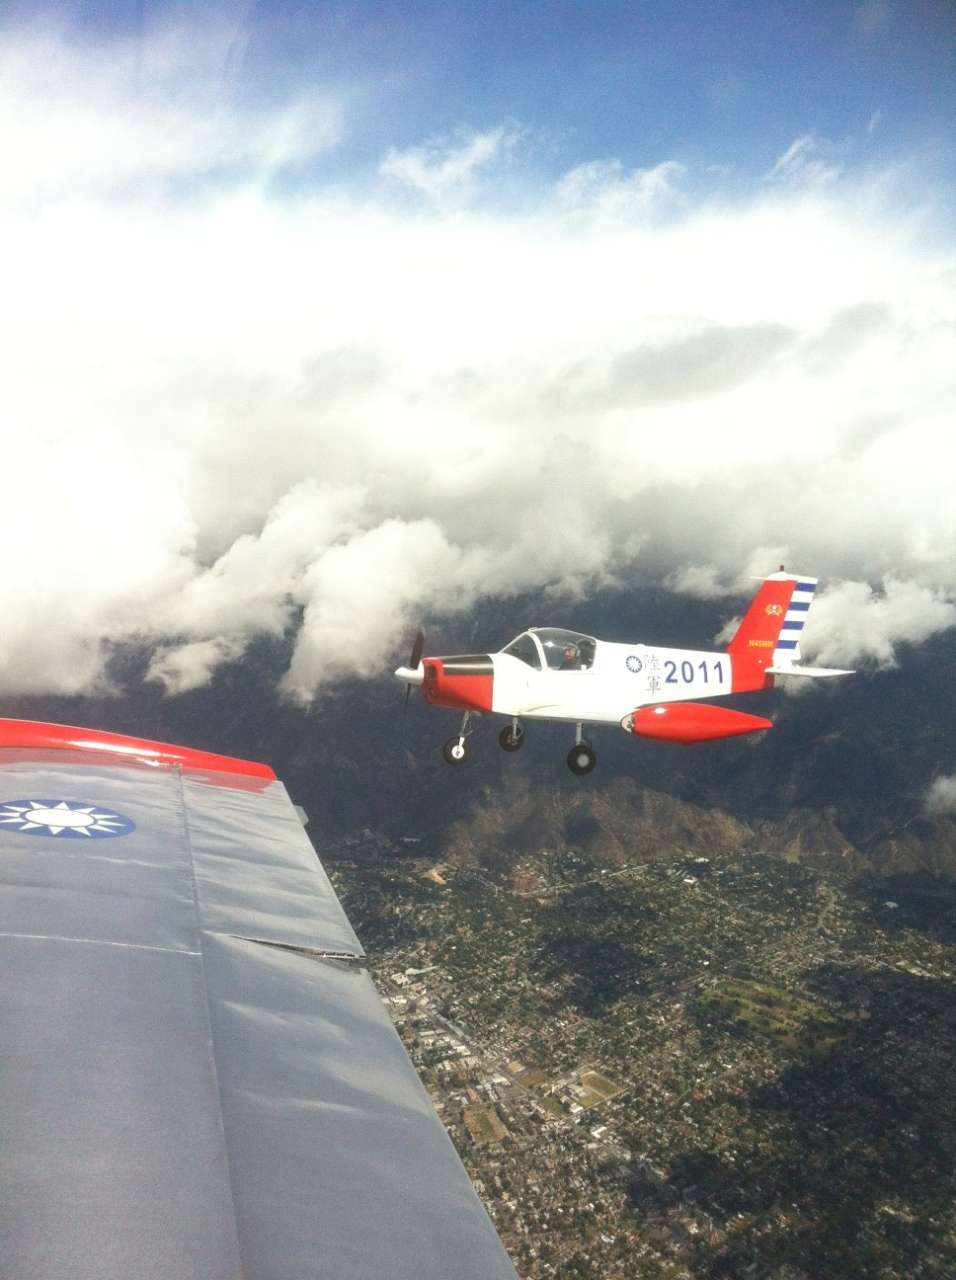 With Jeffrey flying his PL-2 over Pasadena ...